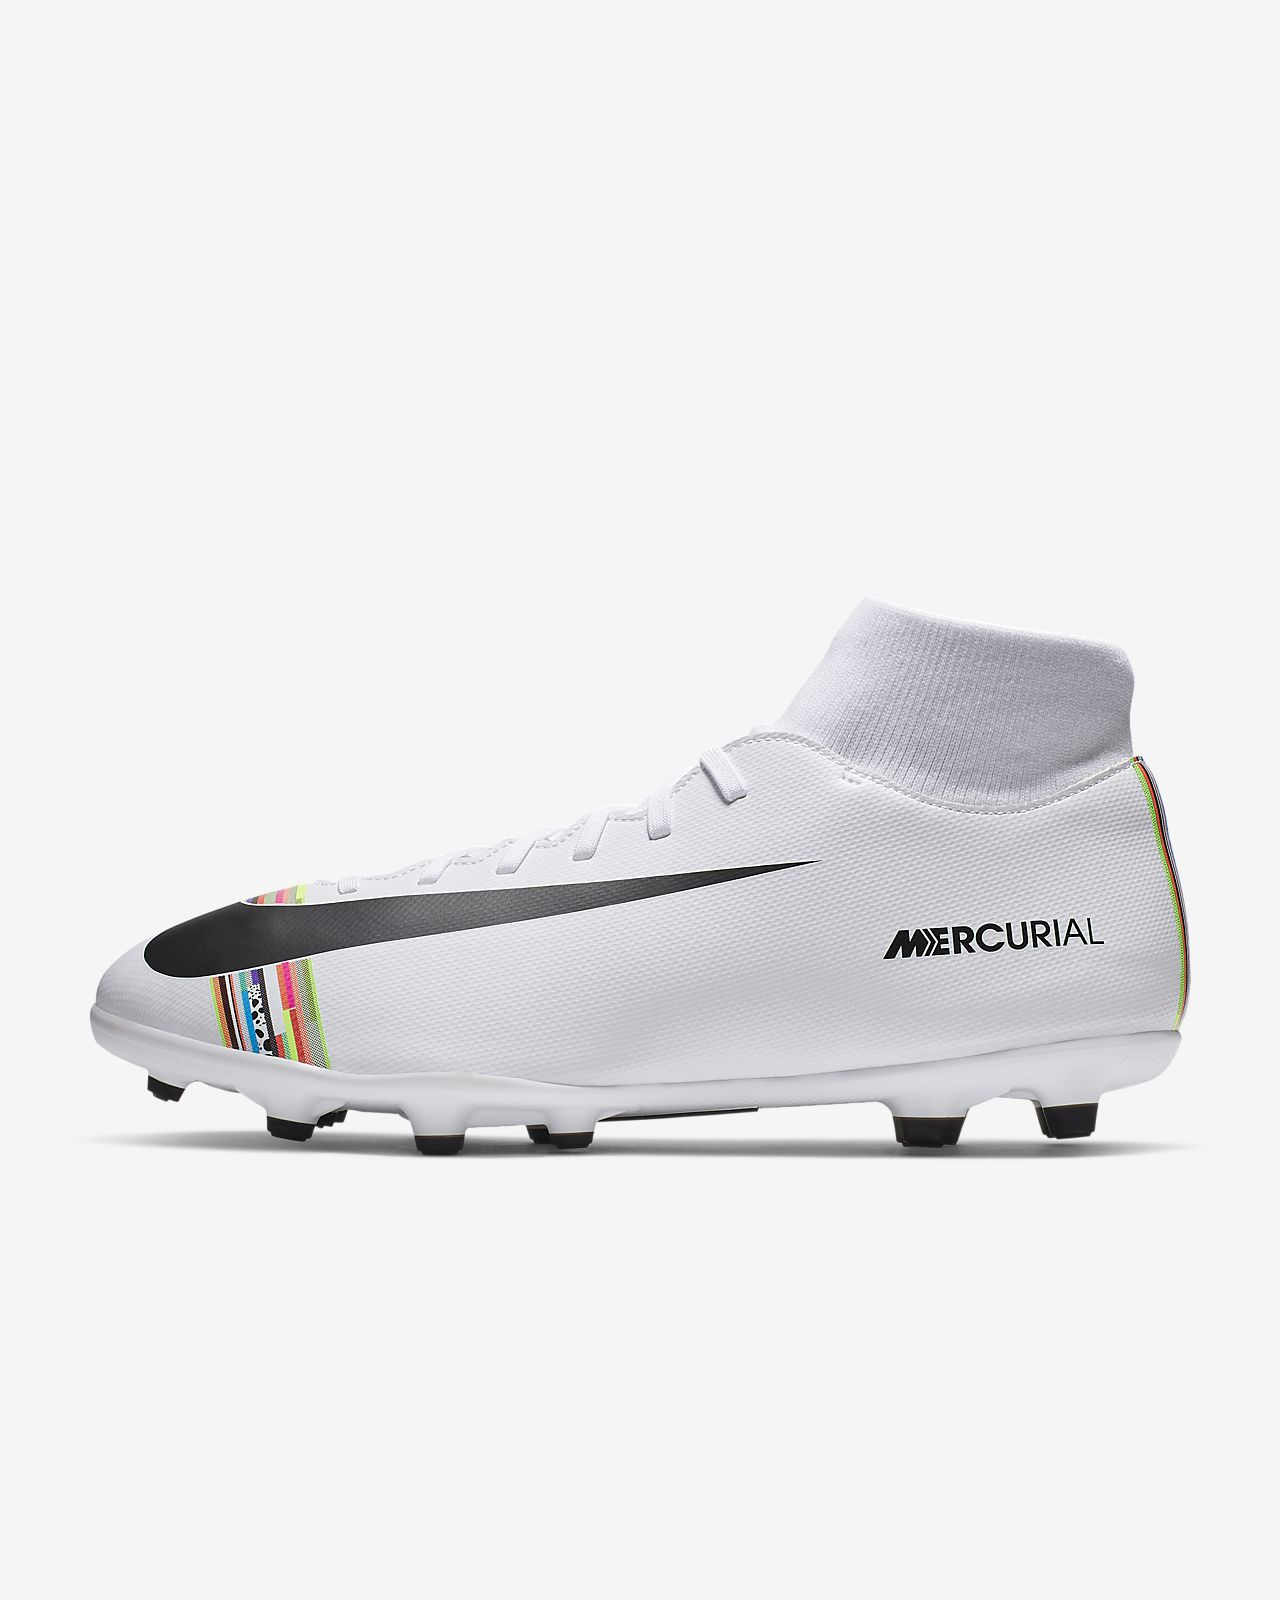 1af8f9505e237 Calzado de fútbol para múltiples superficies Nike Superfly 6 Club MG ...